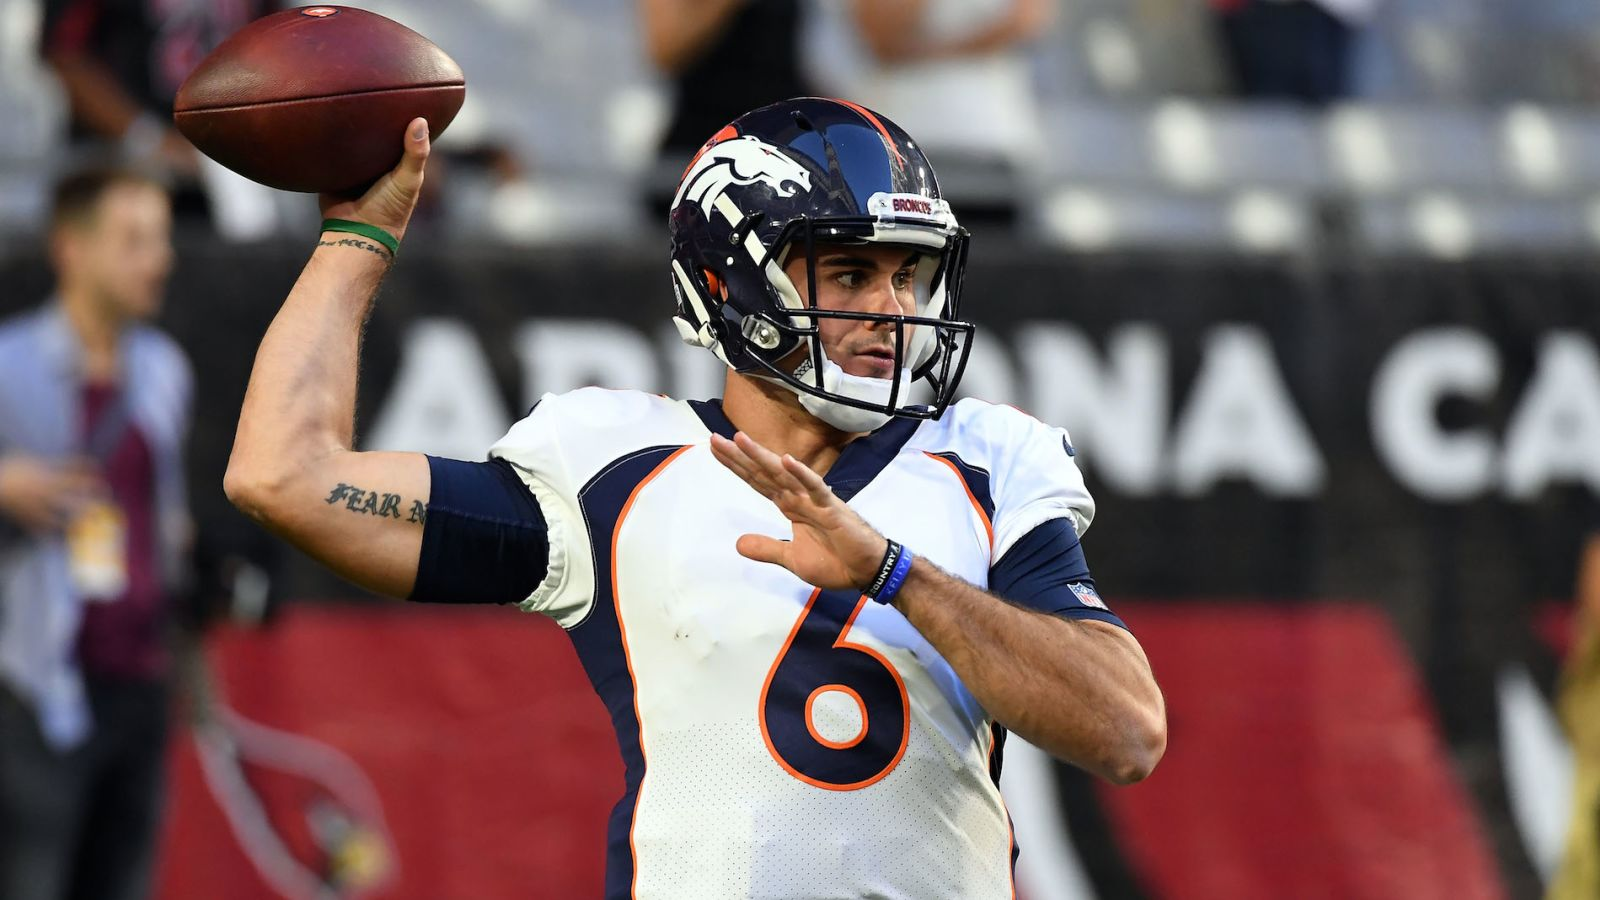 Broncos Cut Chad Kelly After He Allegedly Trespassed And Got Hit With A Vacuum Tube